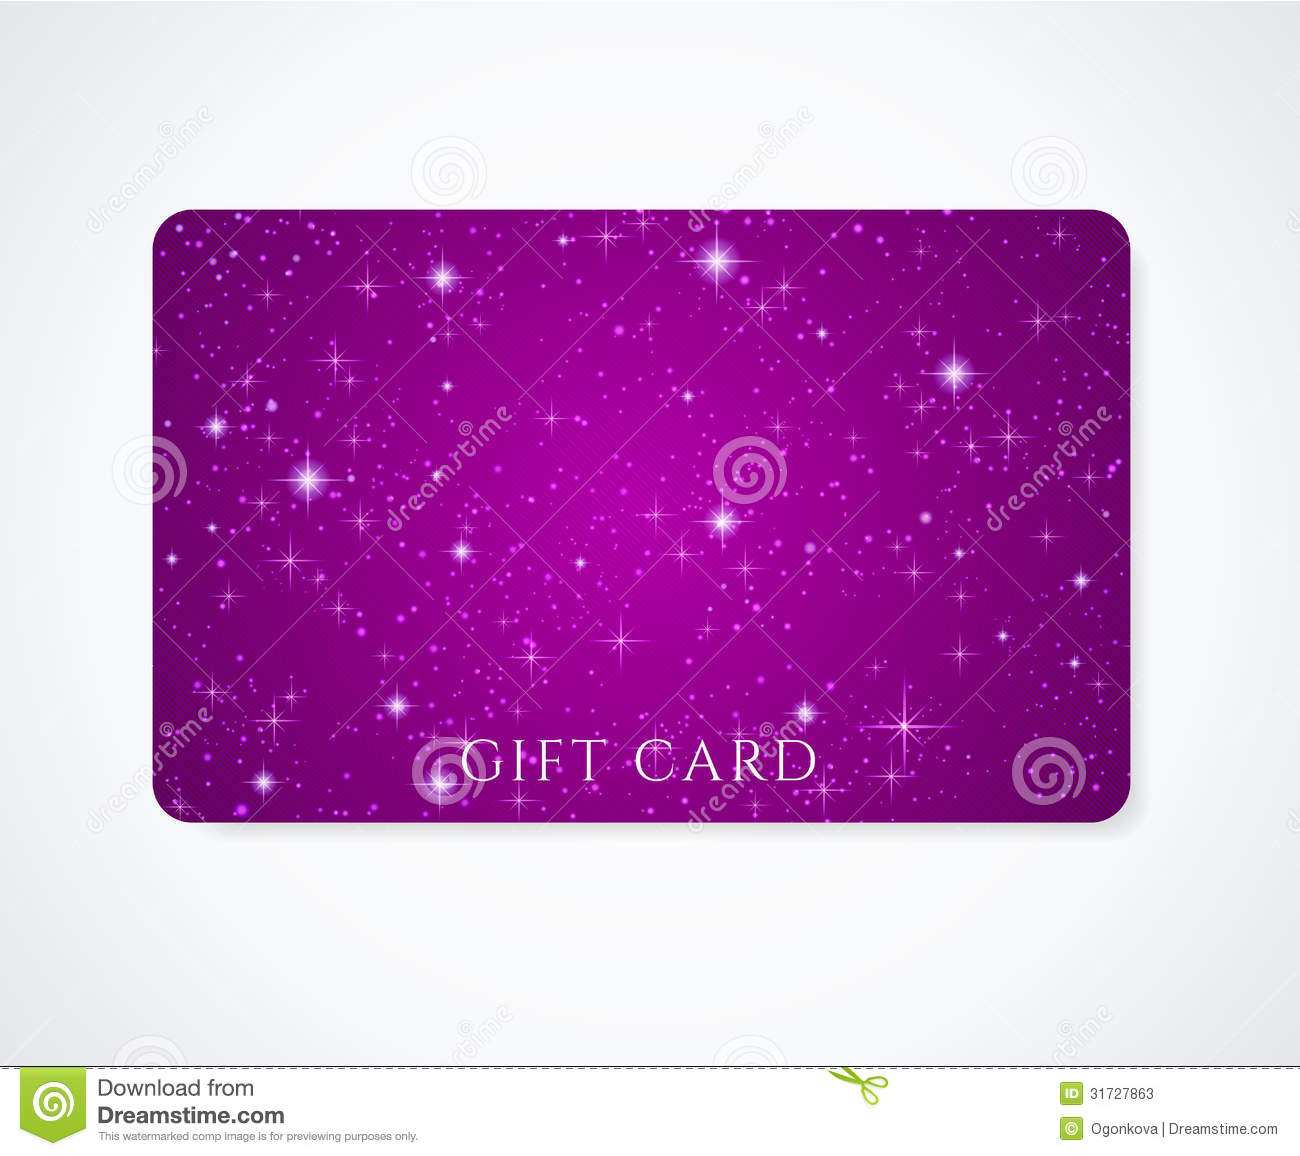 Attractive Business Cards Star Gift - Business Card Ideas - etadam.info